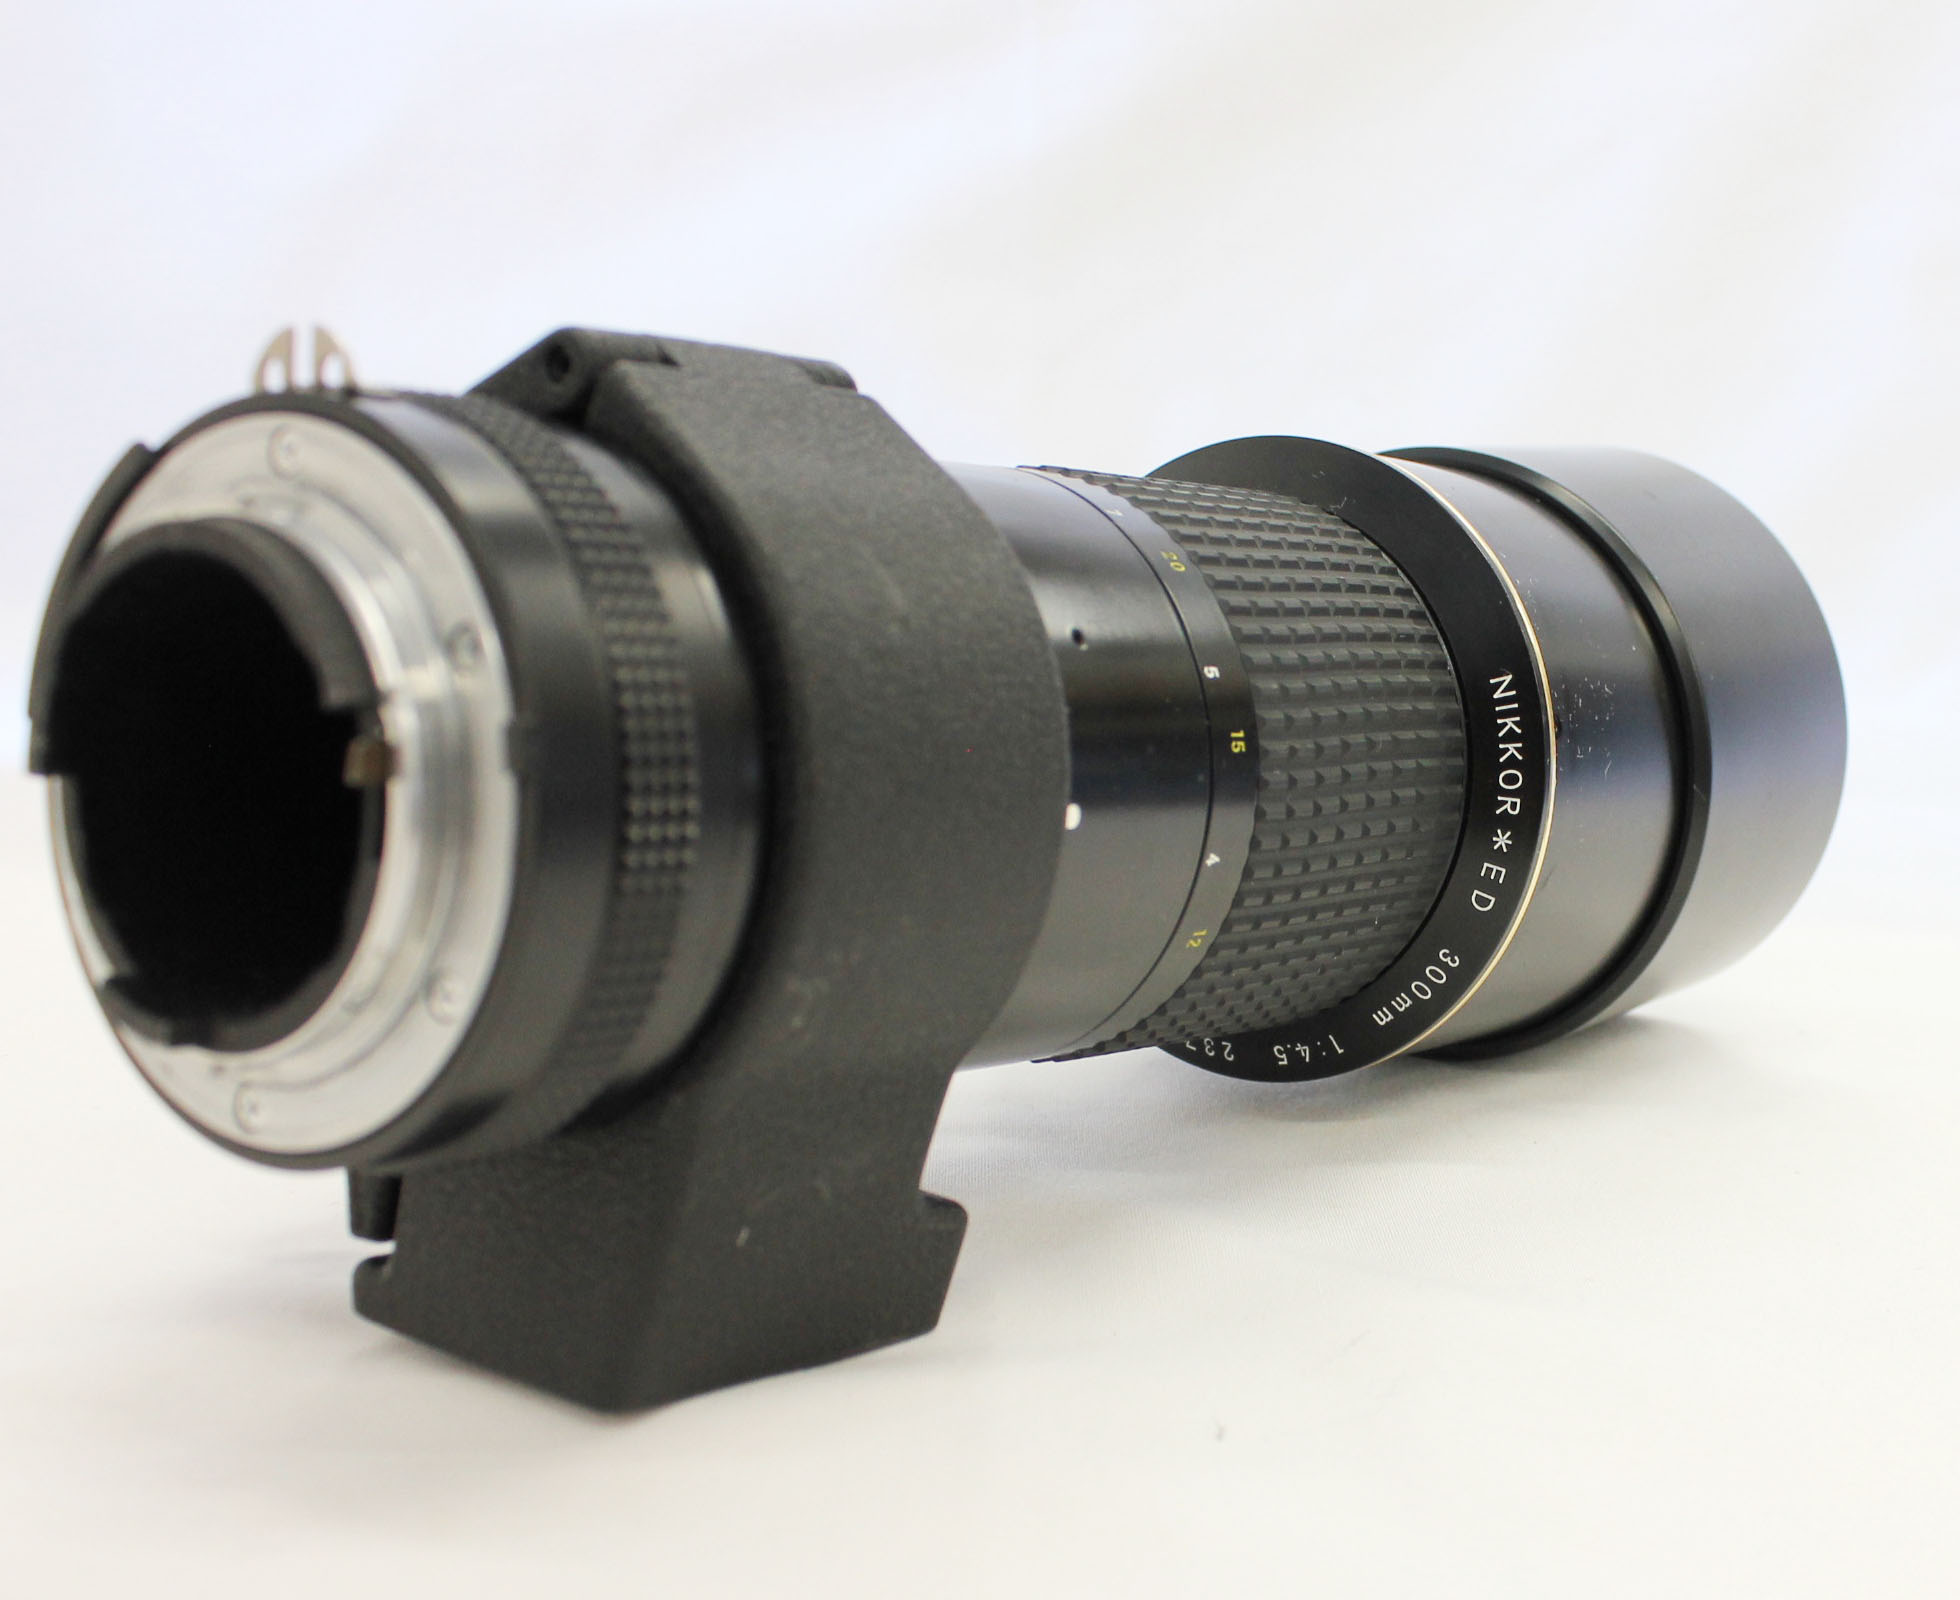 Nikon Ai-s ais Nikkor ED IF 300mm F/4.5 MF Telephoto Lens F Mount from Japan Photo 3